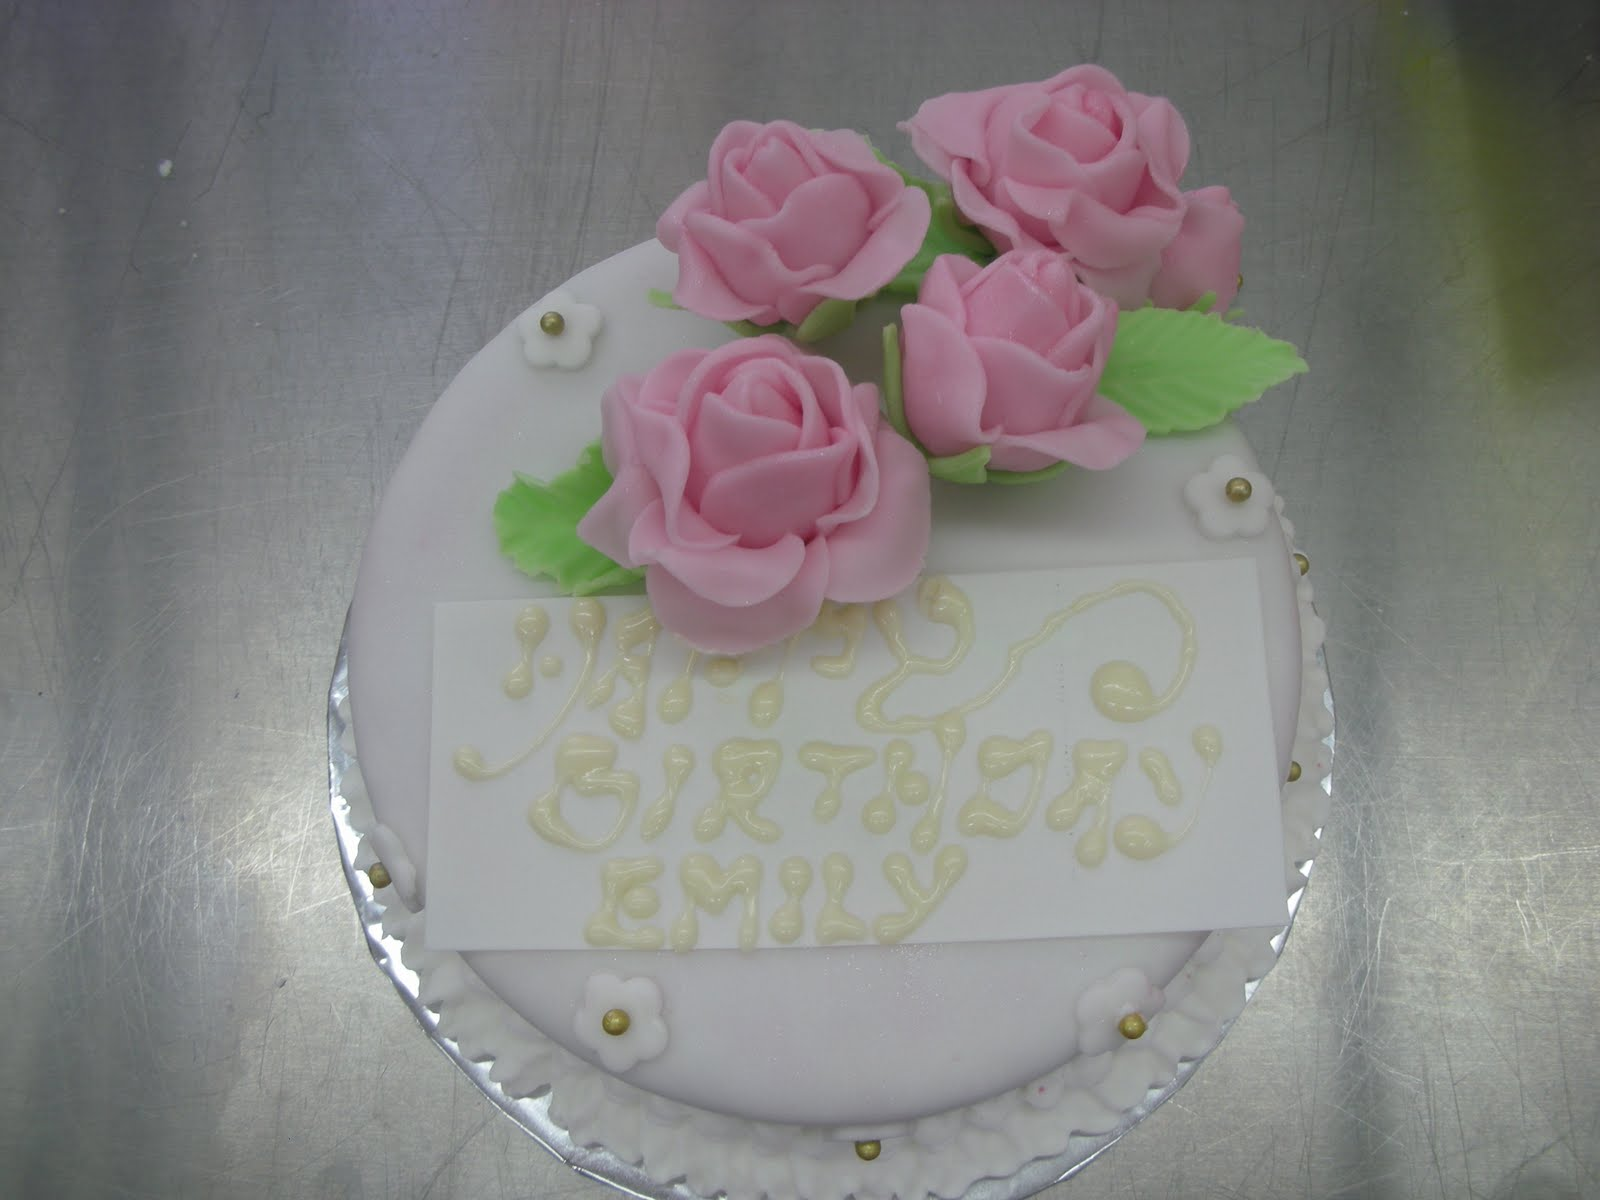 Cake Decorating Course Albury Wodonga : NXXT Creations: Wilton Cake Decorating Course 3